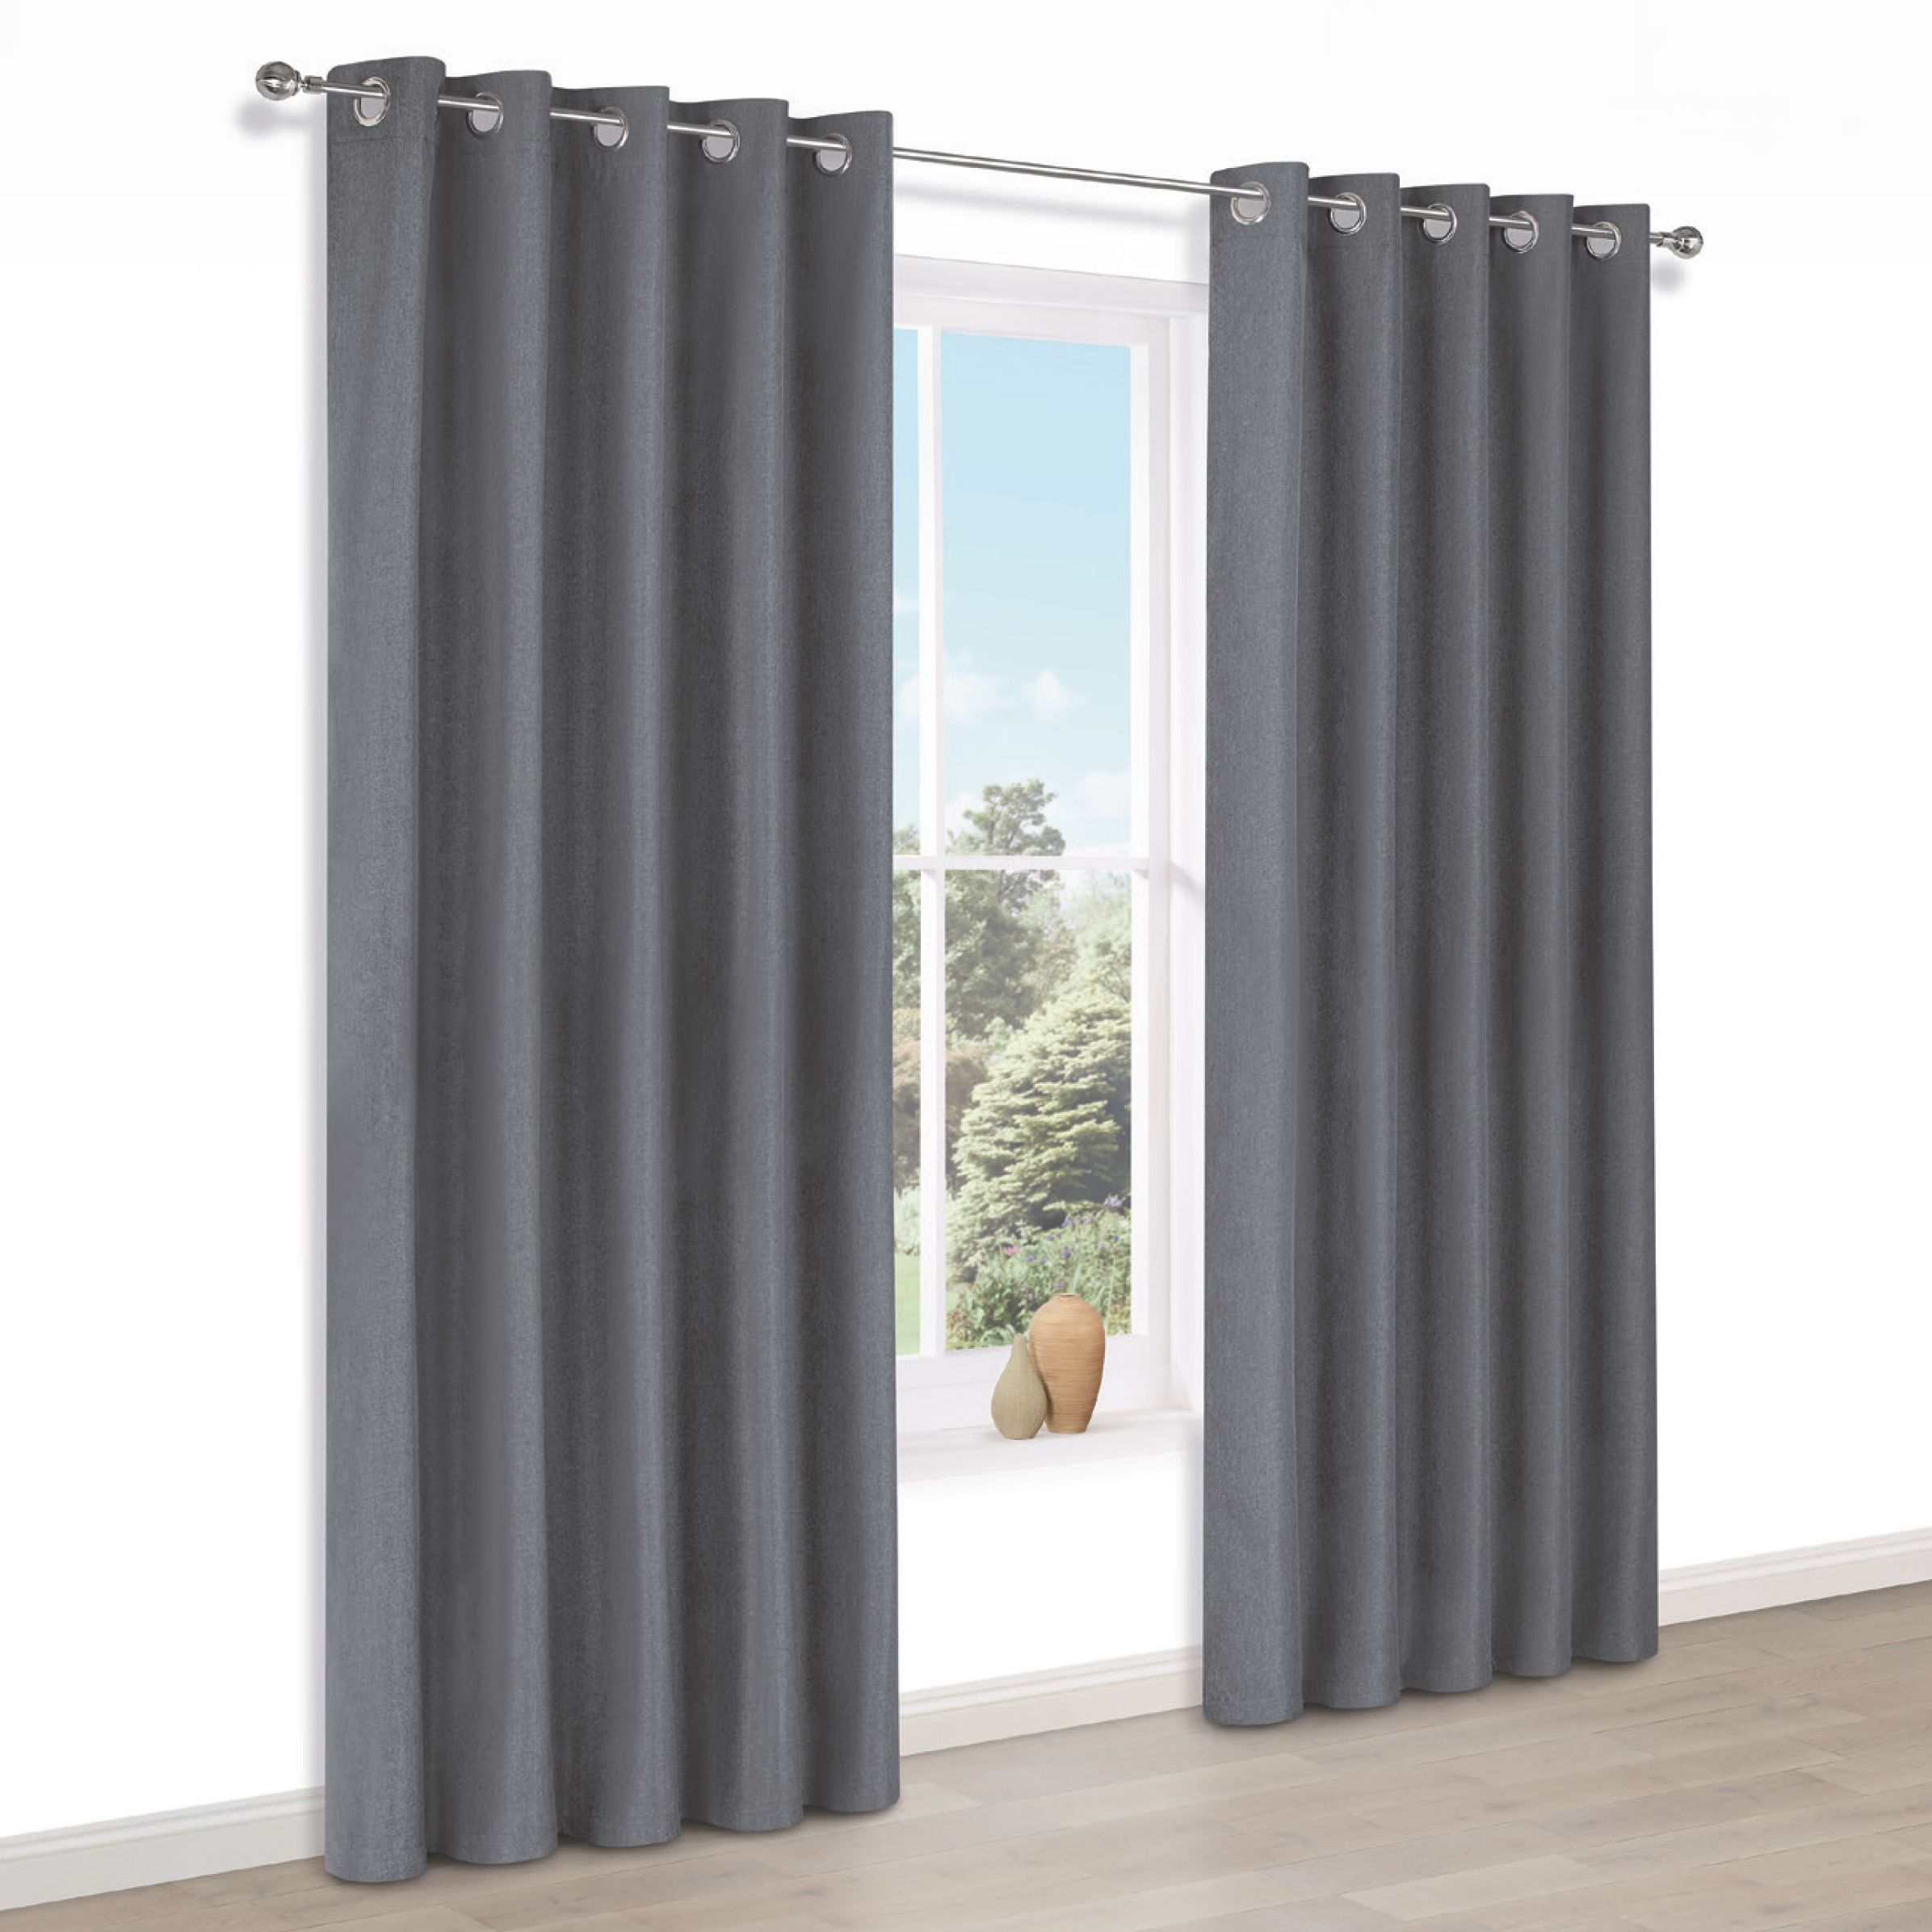 Doroto Grey Plain Thermal Eyelet Lined Curtains (w)117cm (l)137cm